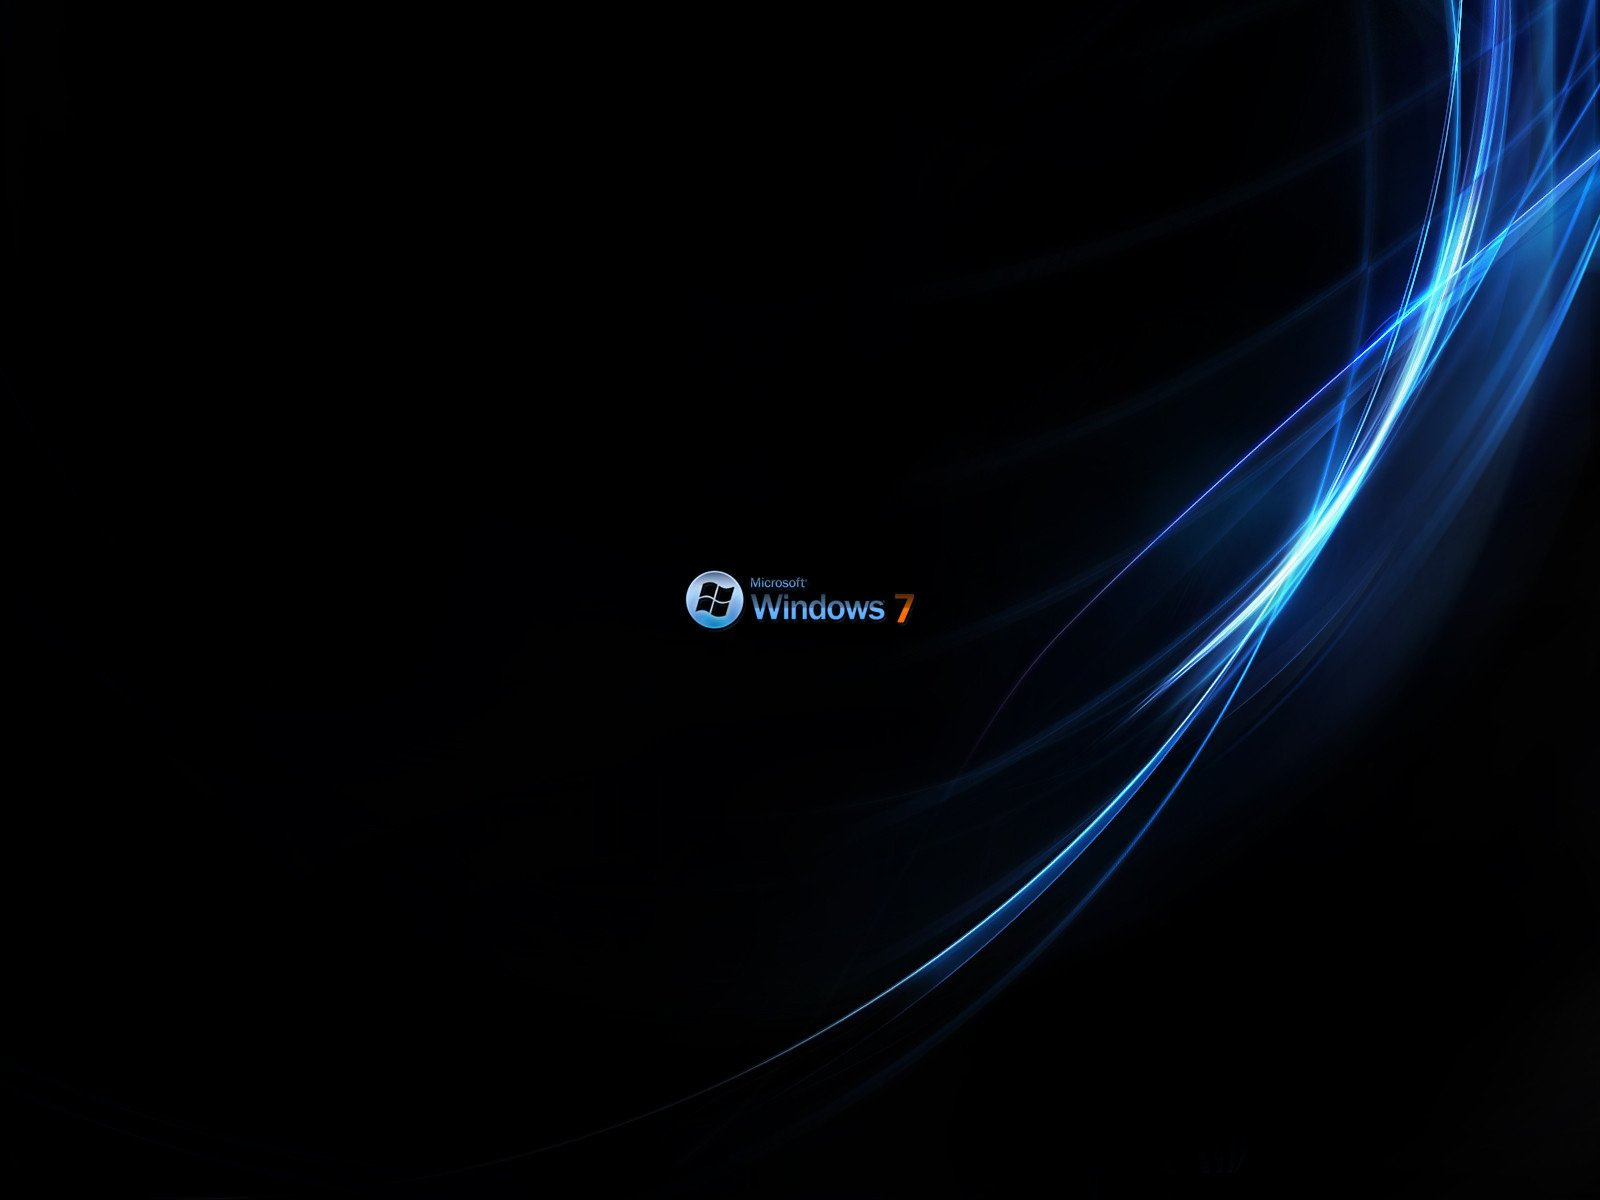 81 windows 7 hd wallpapers | background images - wallpaper abyss